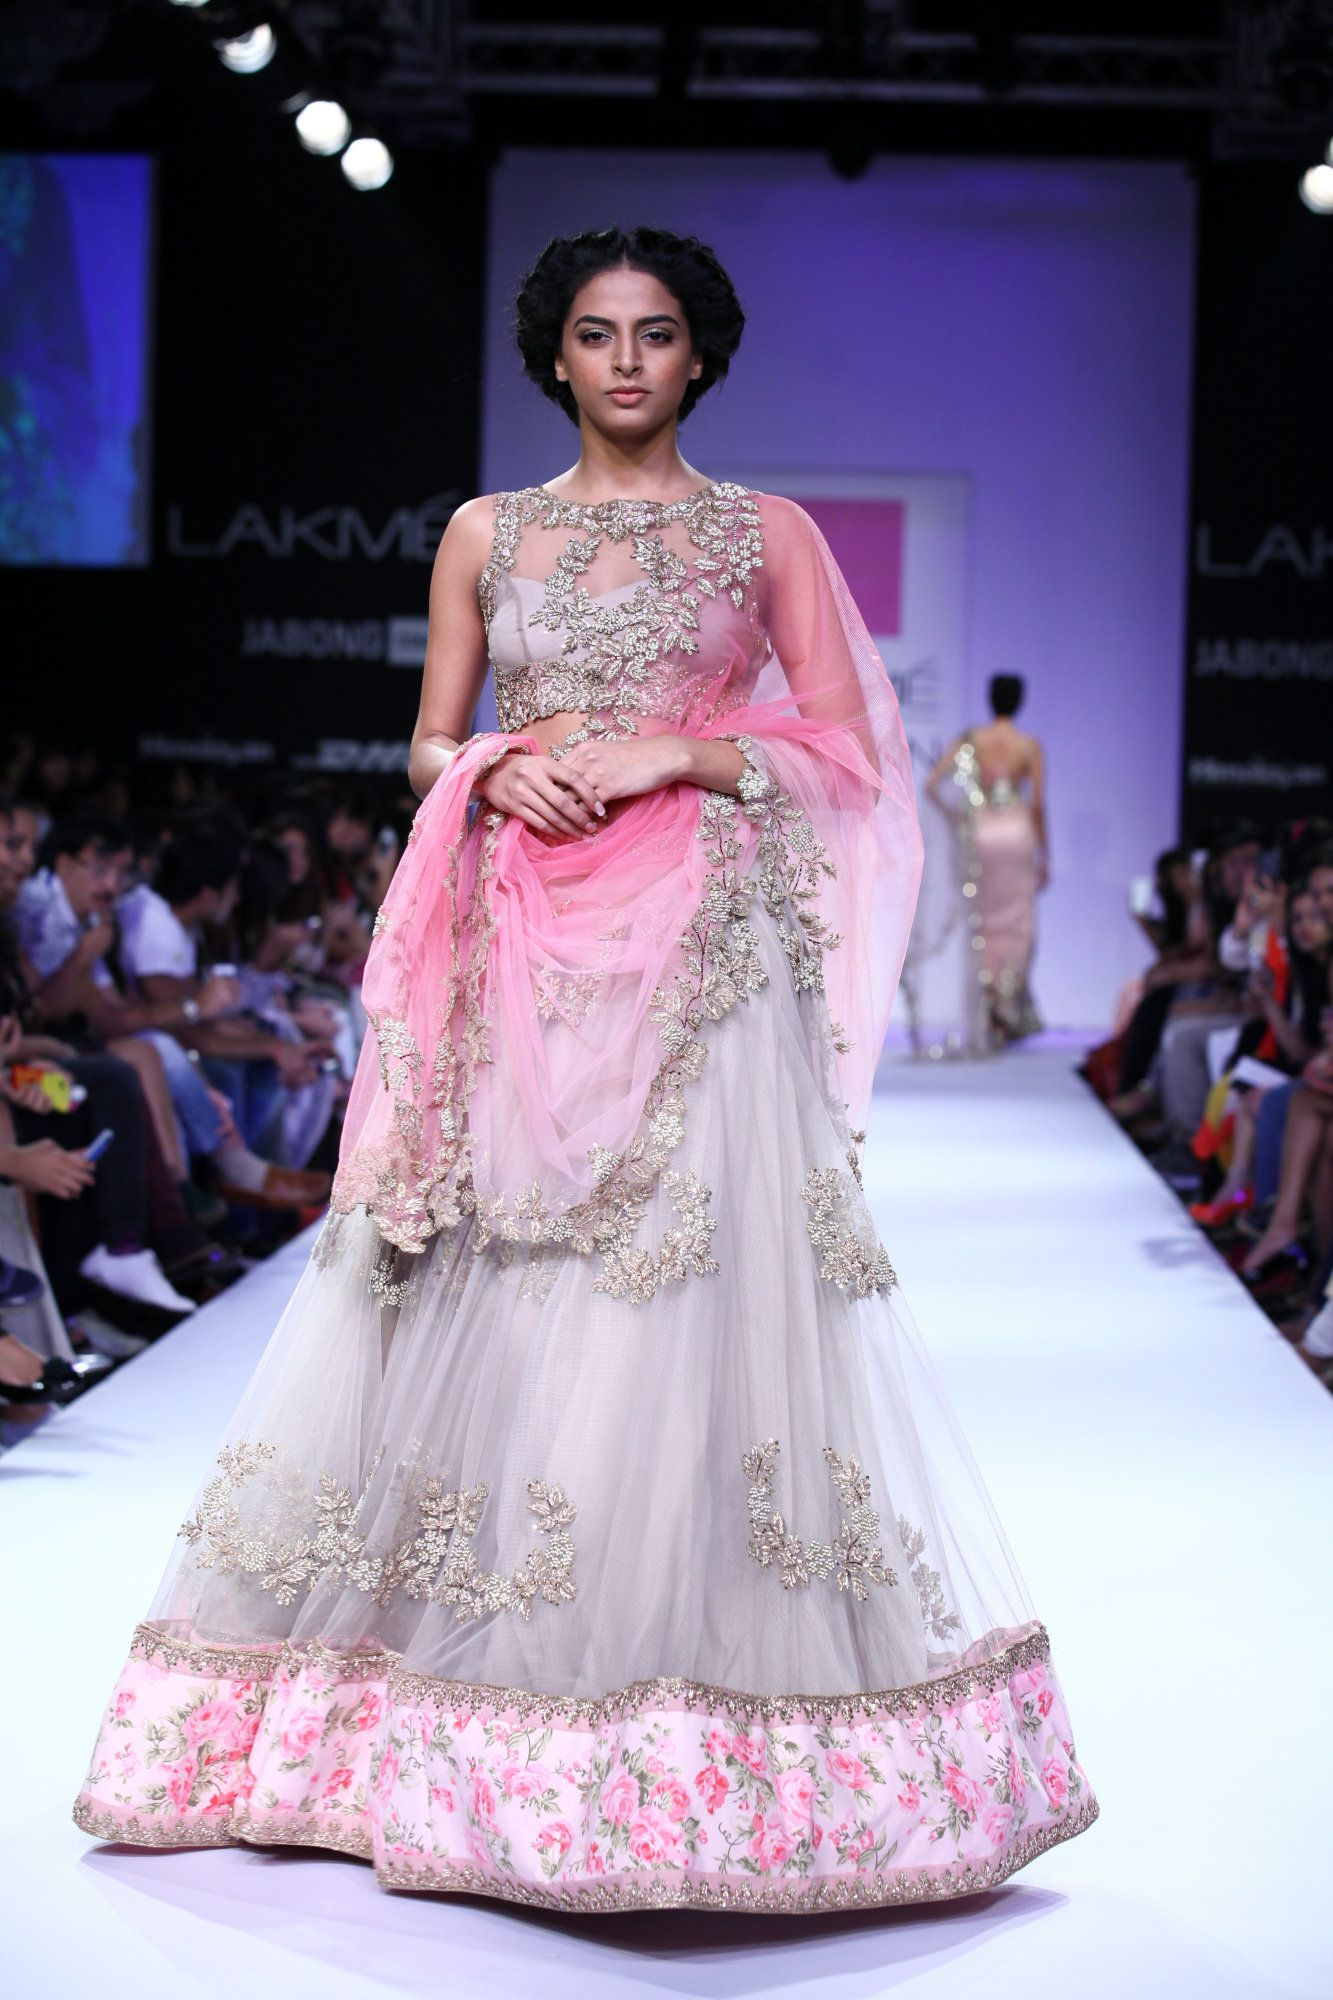 a model on the runway in a grey and pink lehenga